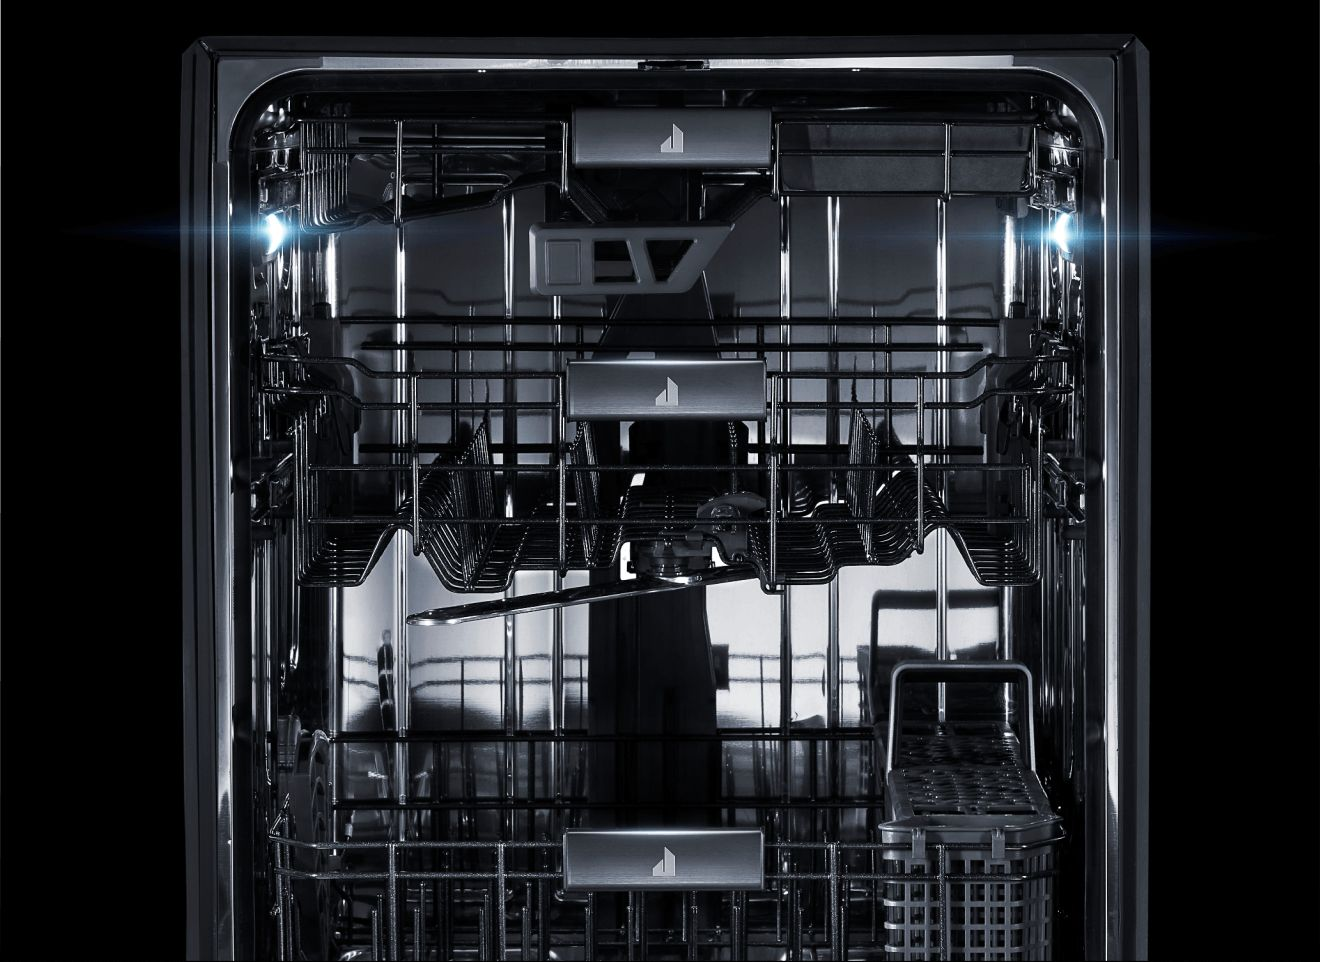 The interior of a JennAir® dishwasher, lit up and clearly visible.